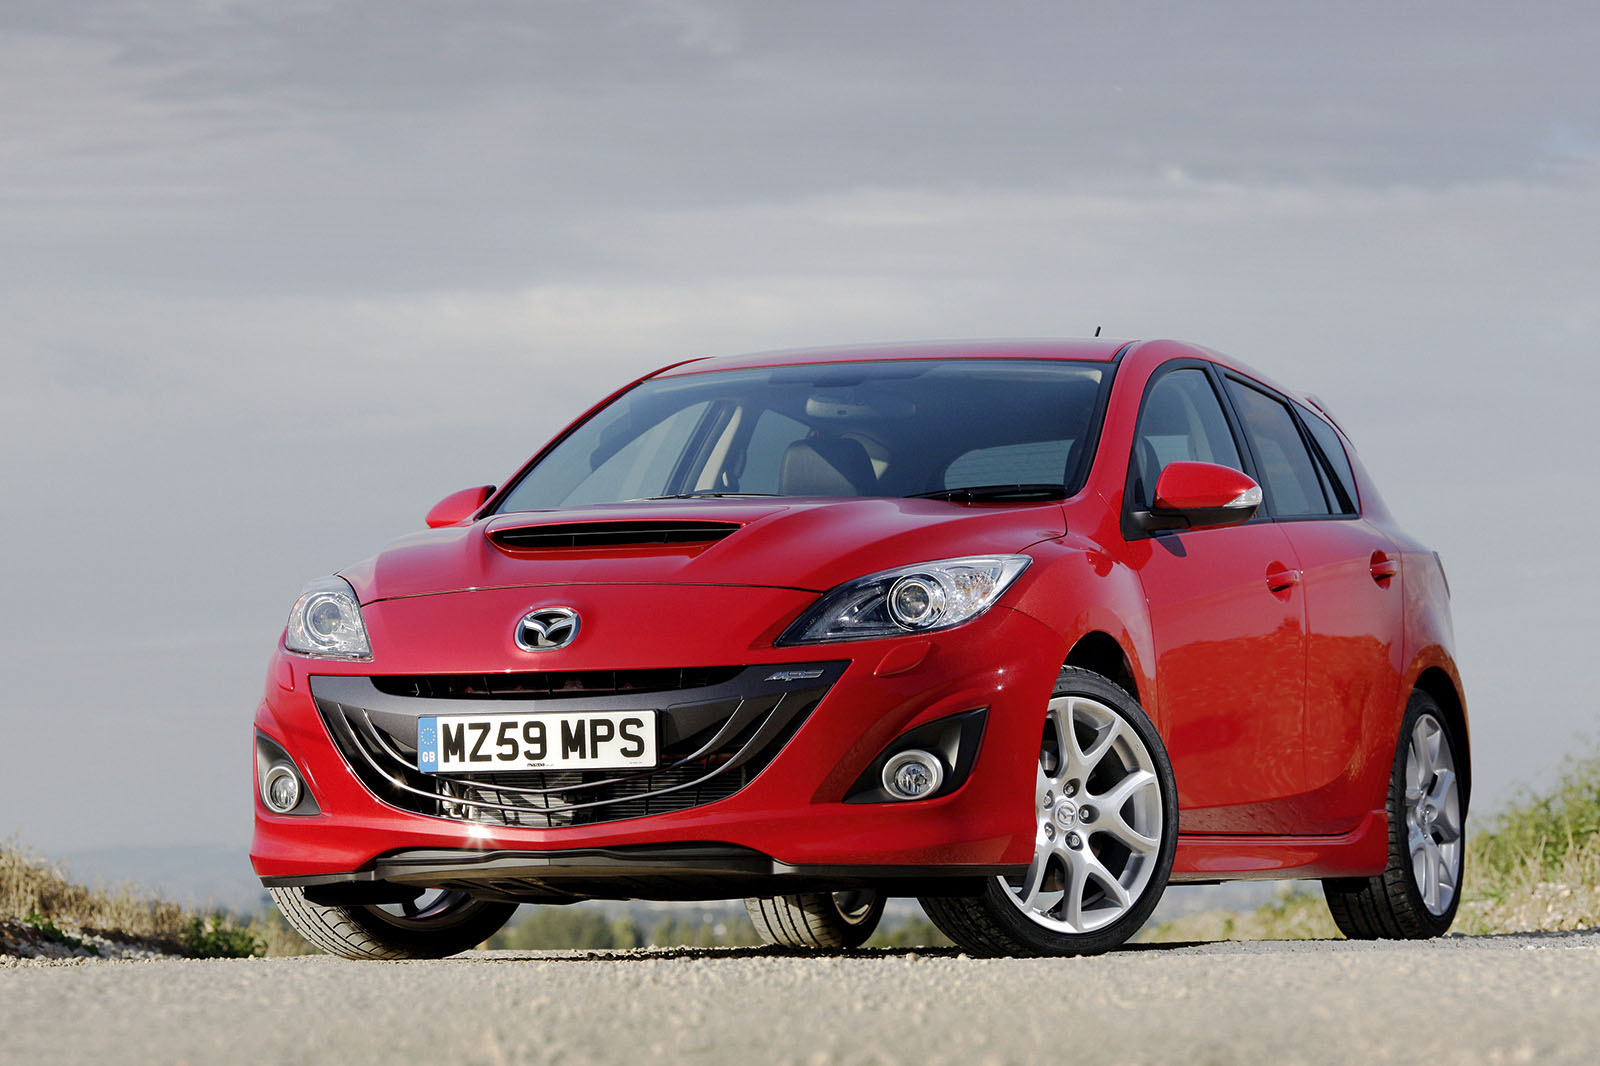 mazda 3 mps used car buying guide autocar. Black Bedroom Furniture Sets. Home Design Ideas